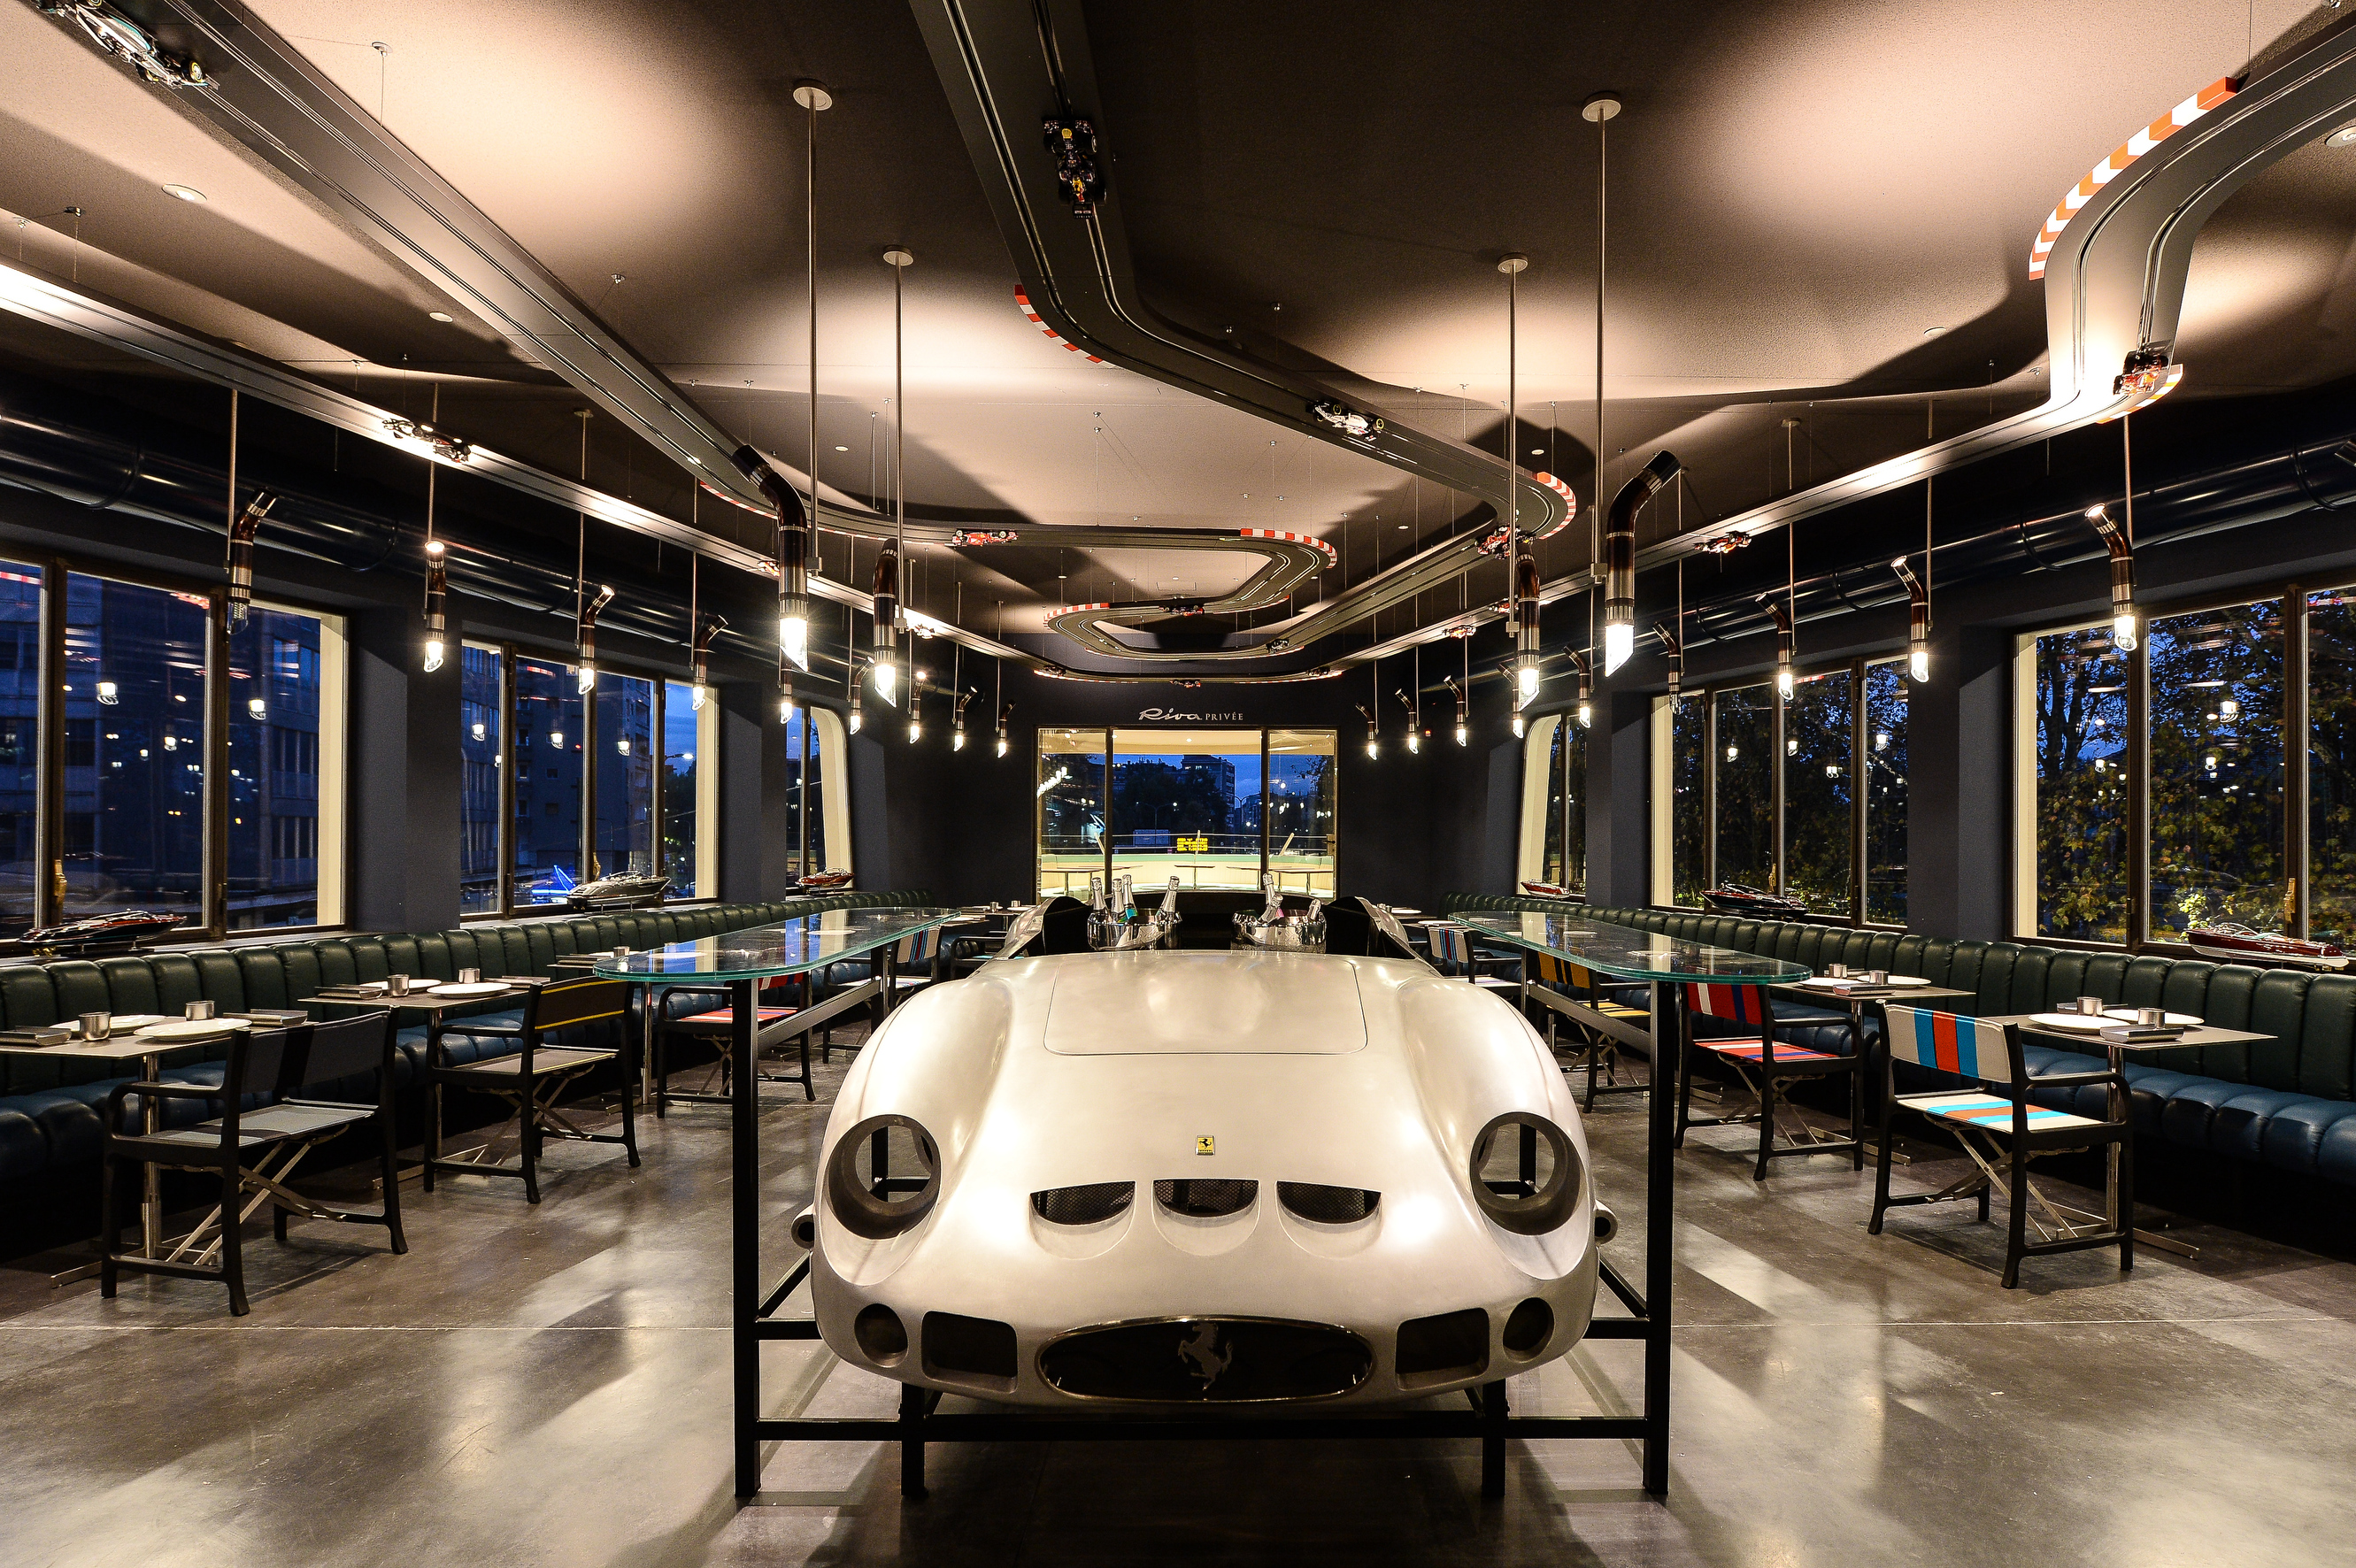 Carlo Cracco's restaurant at Garage Italia's headquarters